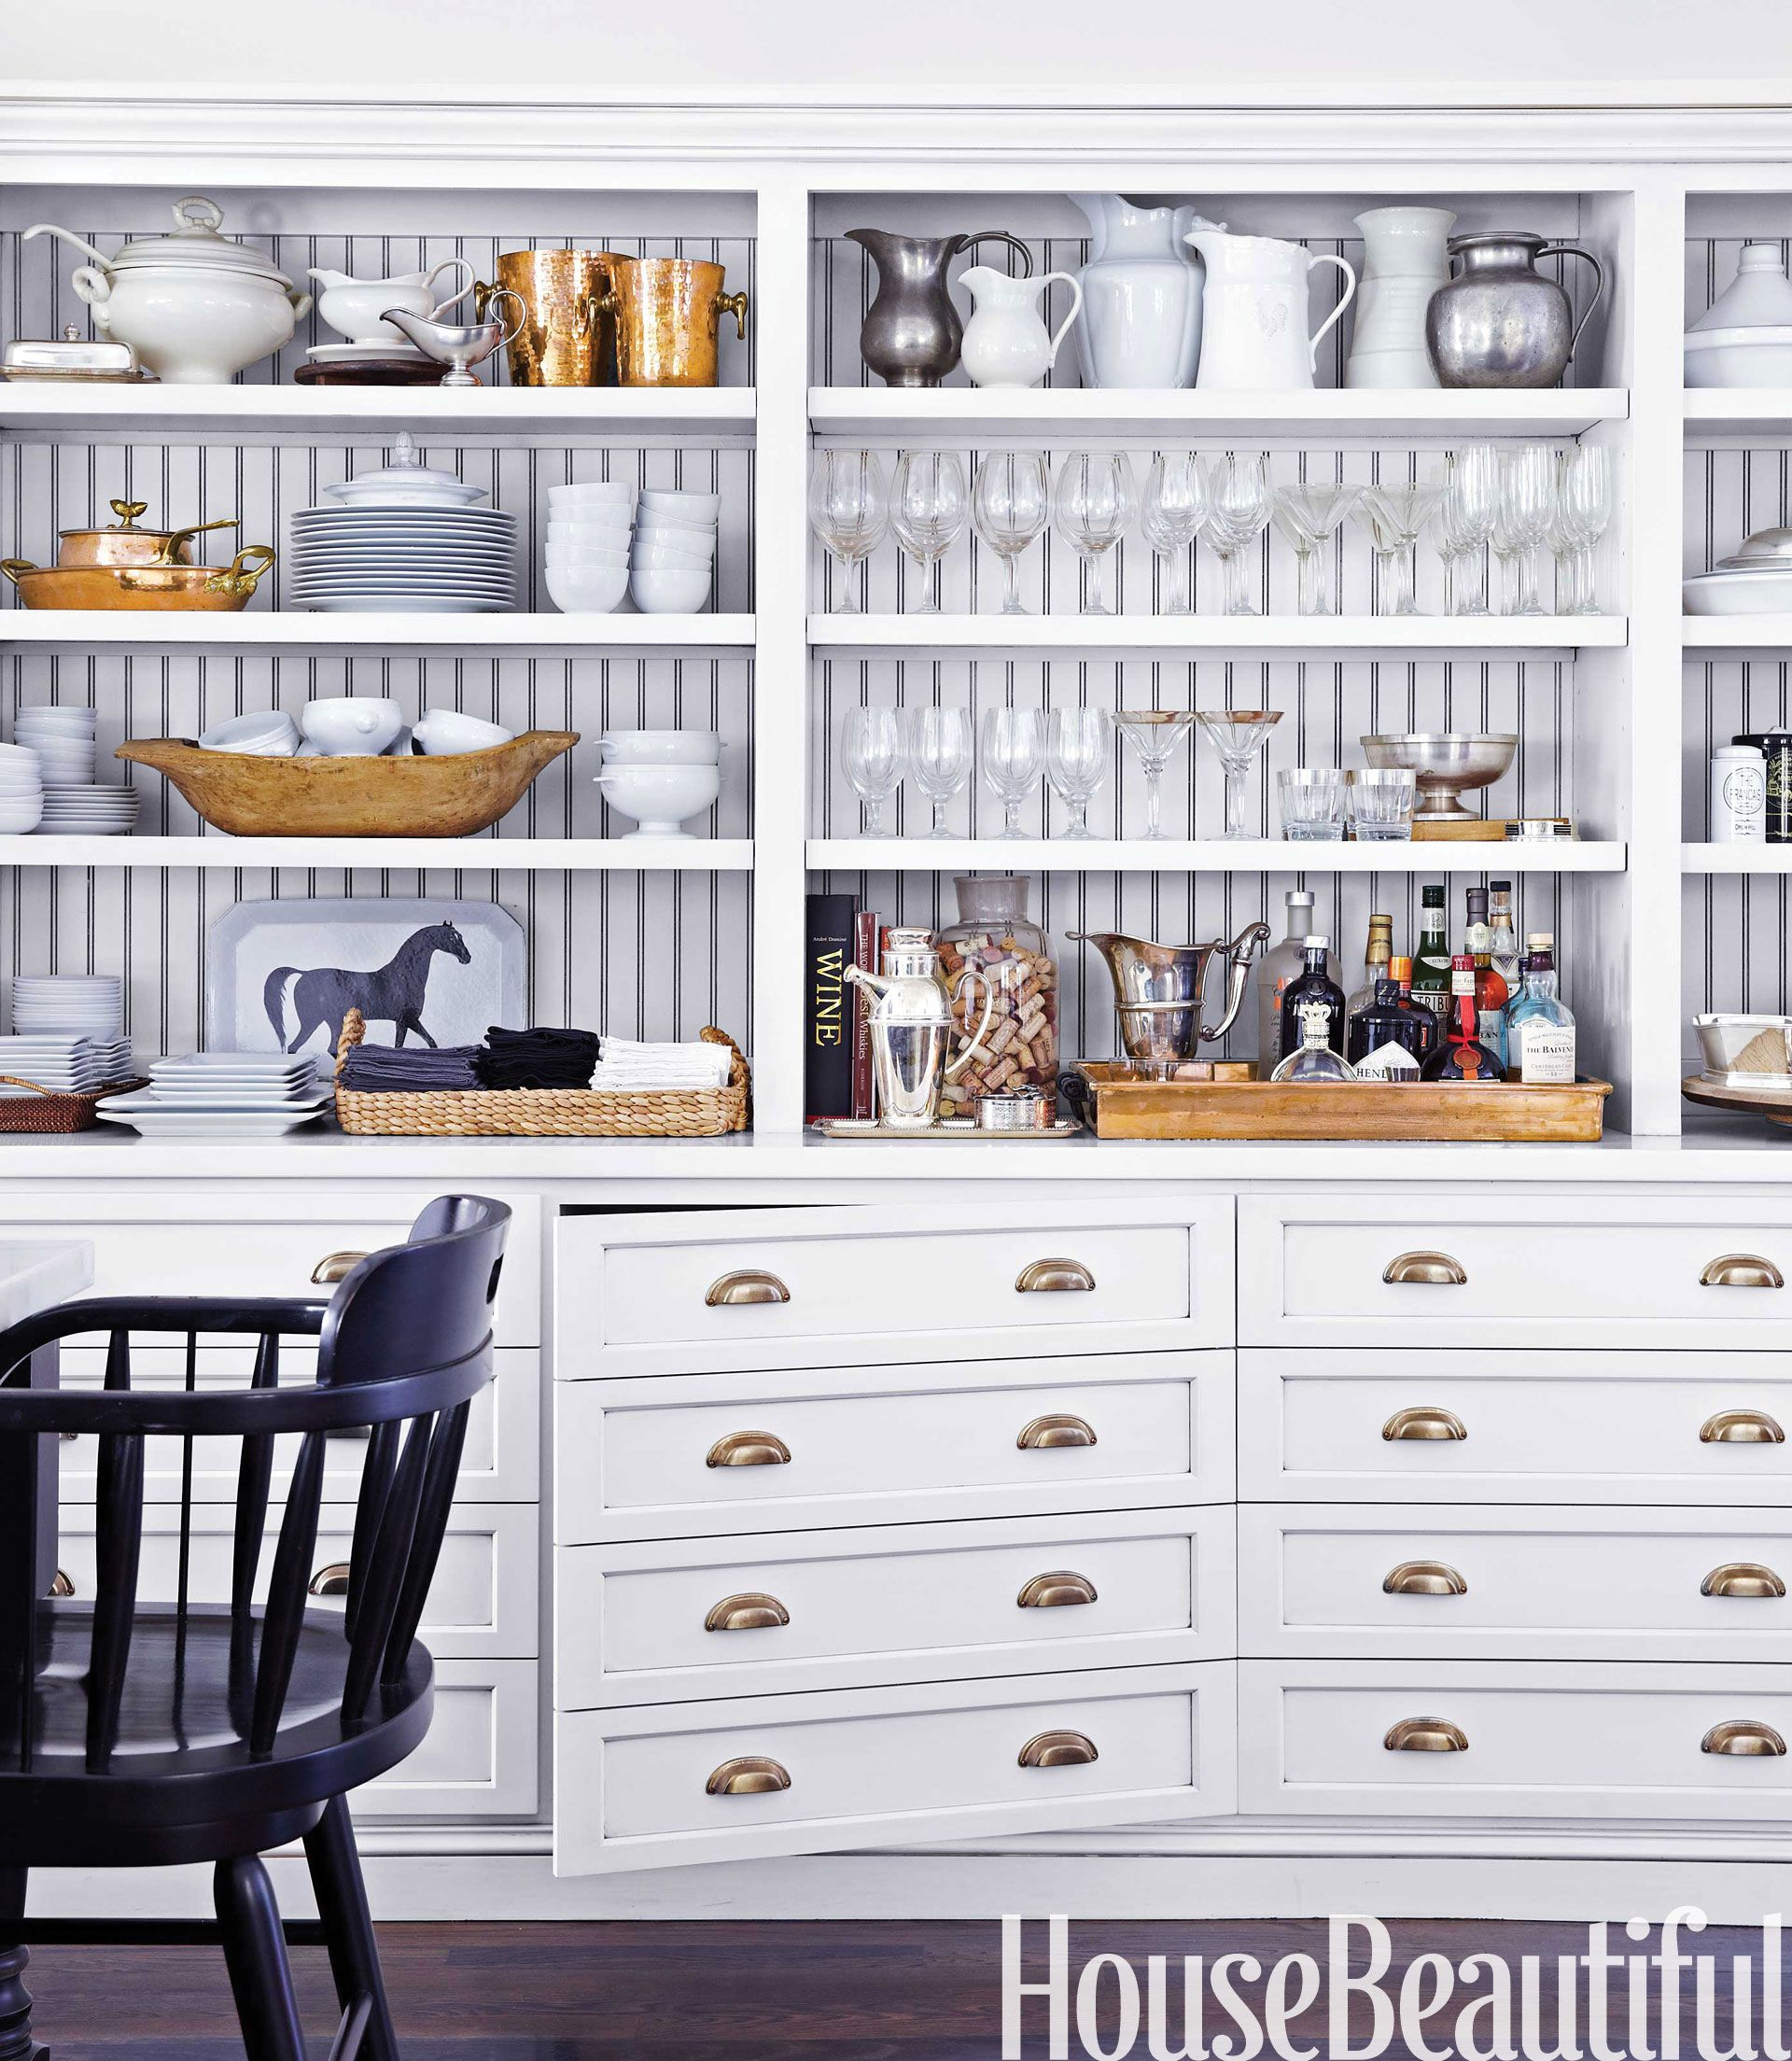 Kitchen Cabinets Shelves Ideas Amusing 24 Unique Kitchen Storage Ideas  Easy Storage Solutions For Kitchens Design Inspiration